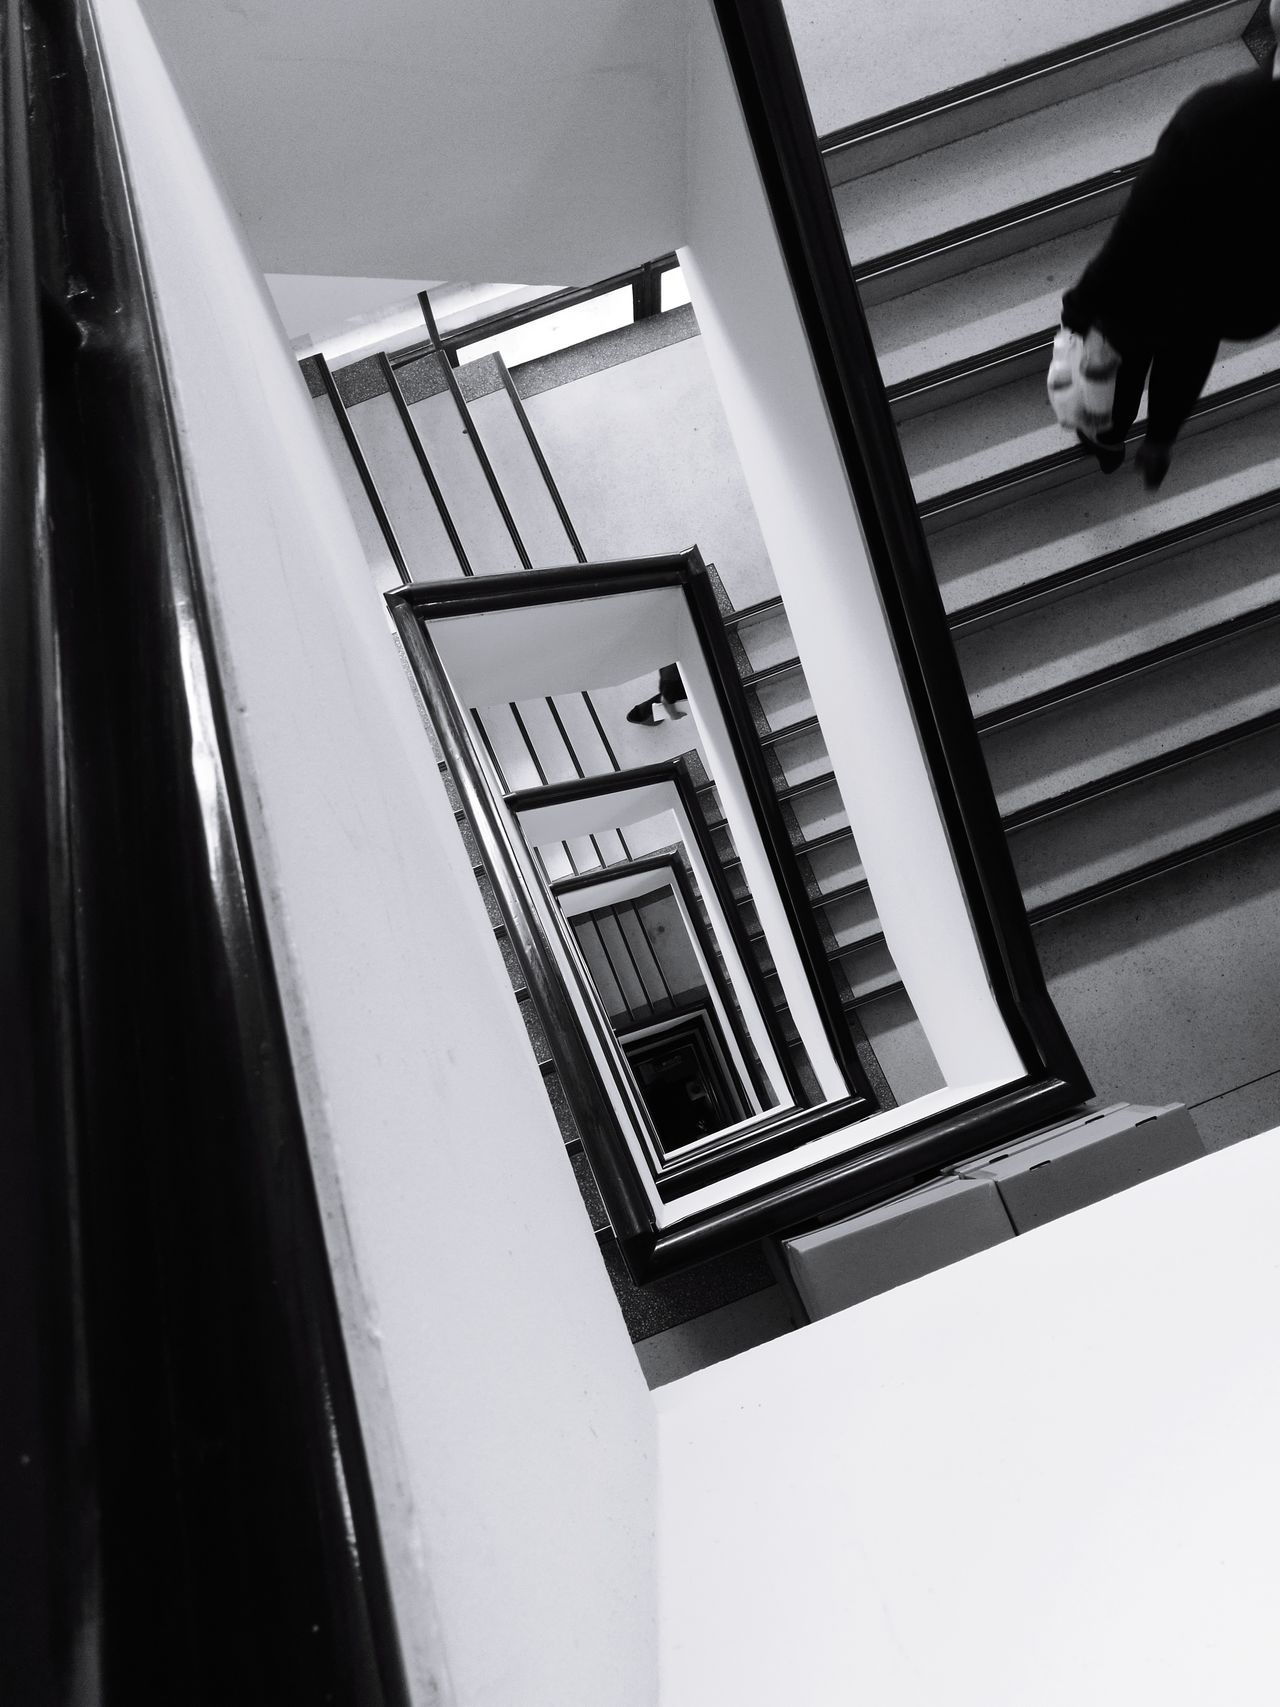 Staircase Steps And Staircases Built Structure Railing Steps Architecture High Angle View Building Exterior Spiral Staircase Indoors  No People Day EyeEm Best Shots EyeEmBestPics Focus On Foreground Blackandwhitephotography Black&white EyeEm Thailand Indoors  Steps Indoors  Low Angle View Indoors  Architecture